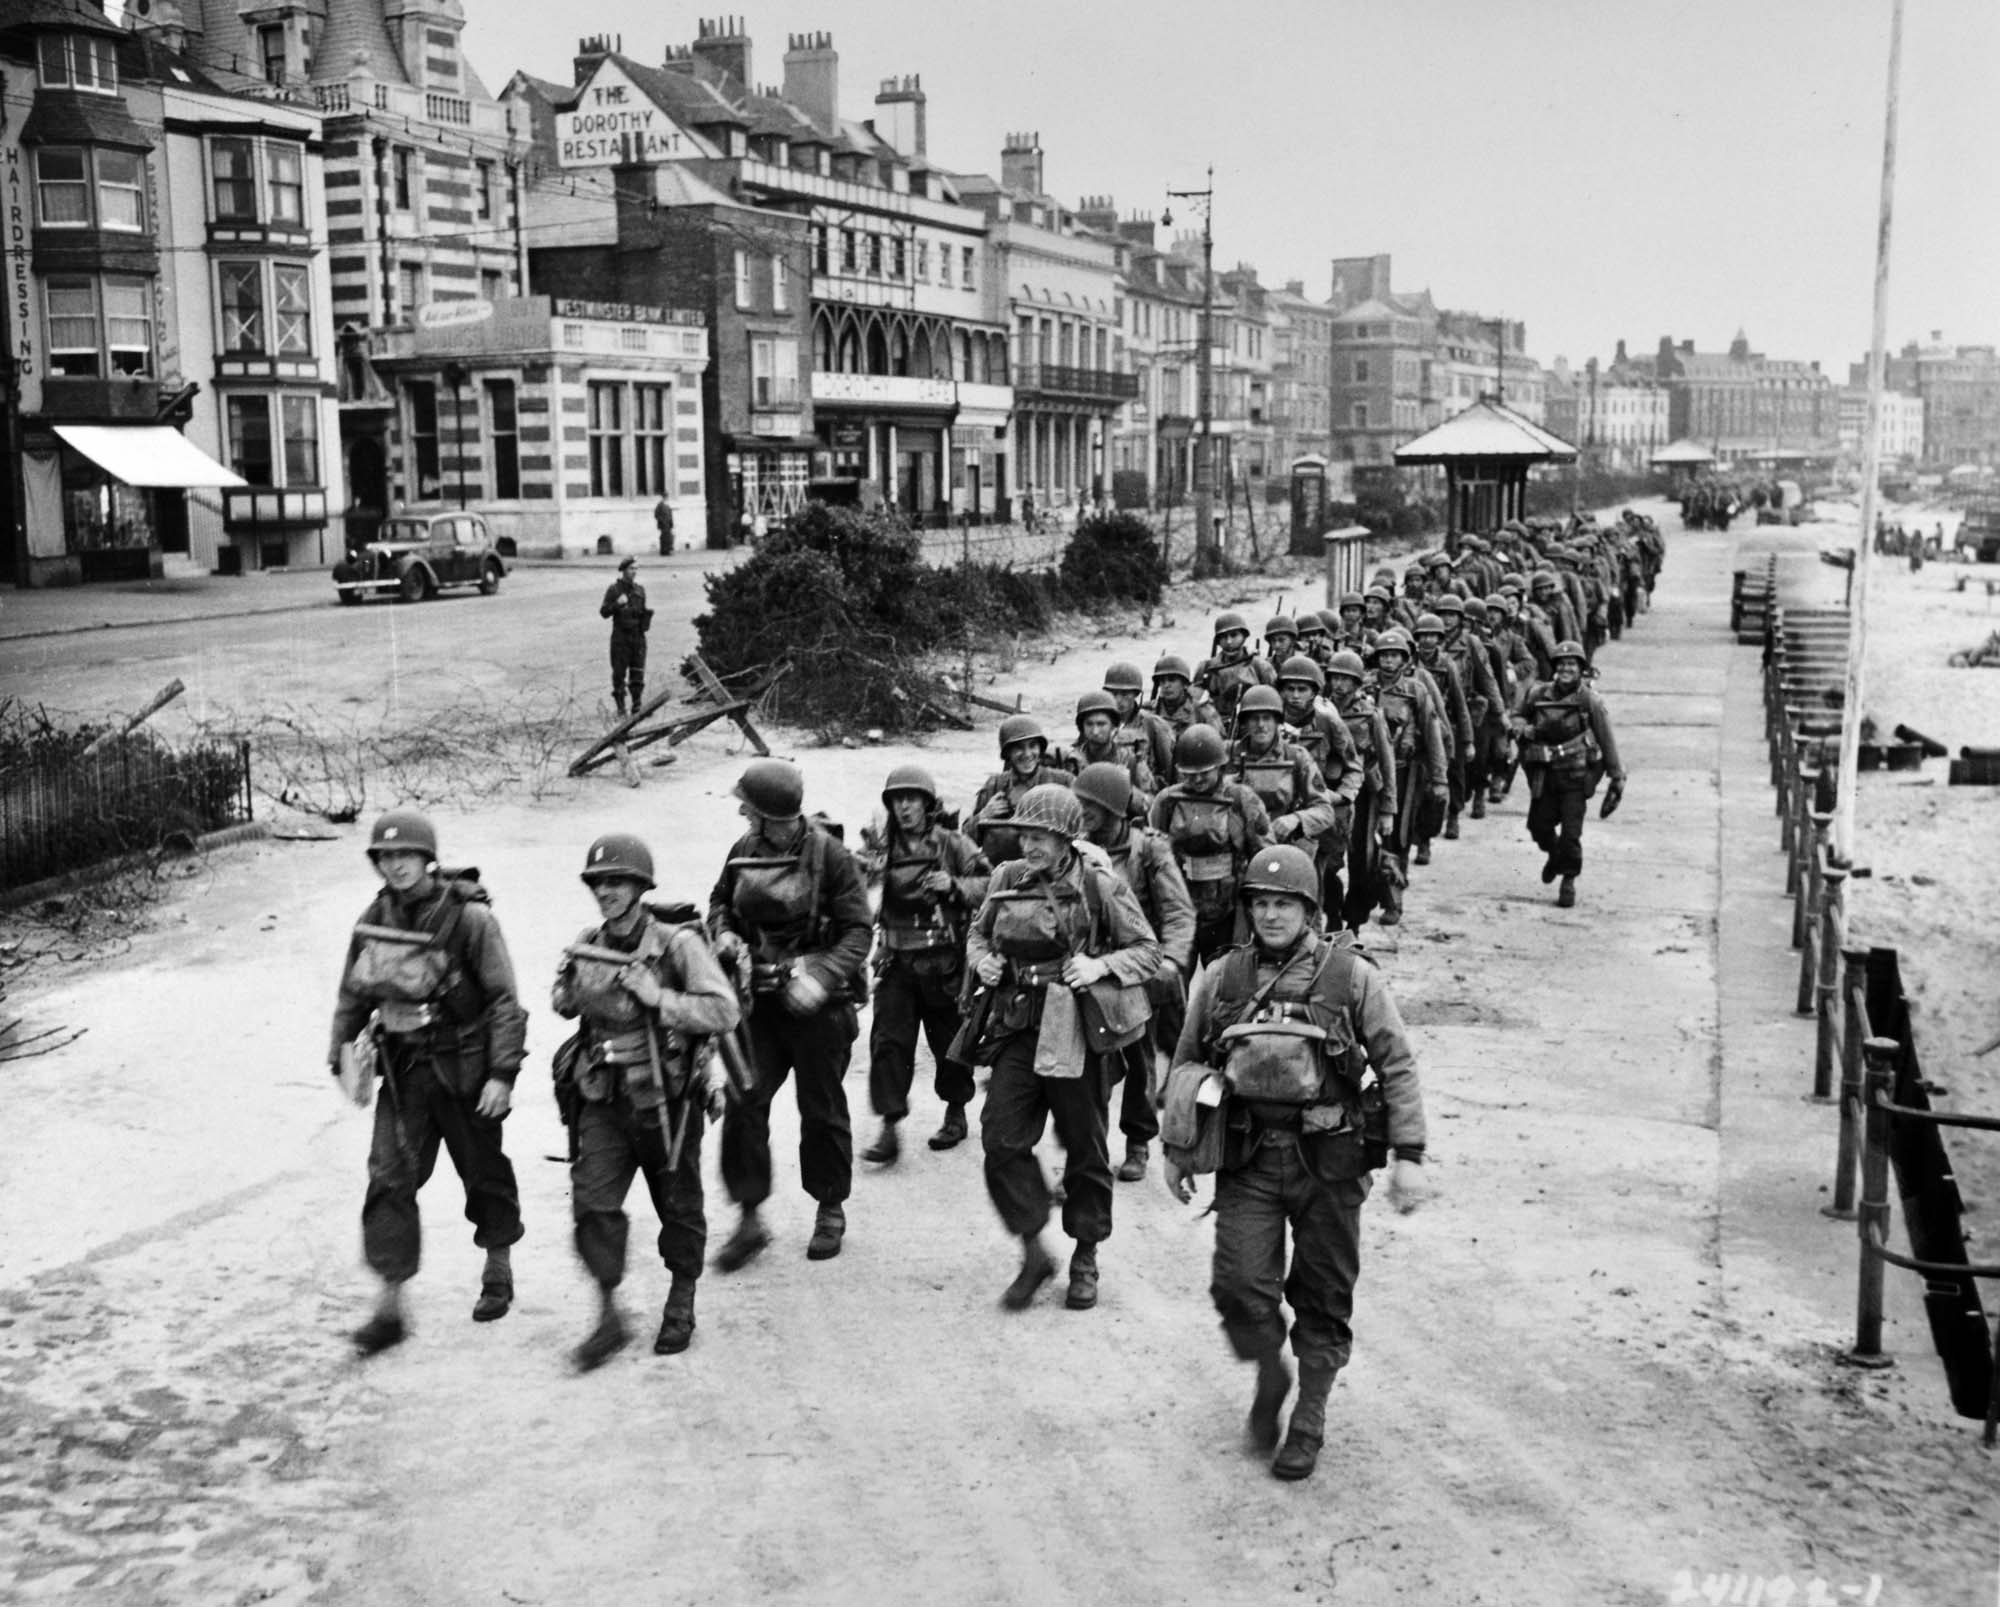 a photo of a group of US soldiers marching through a seaside town's seafront